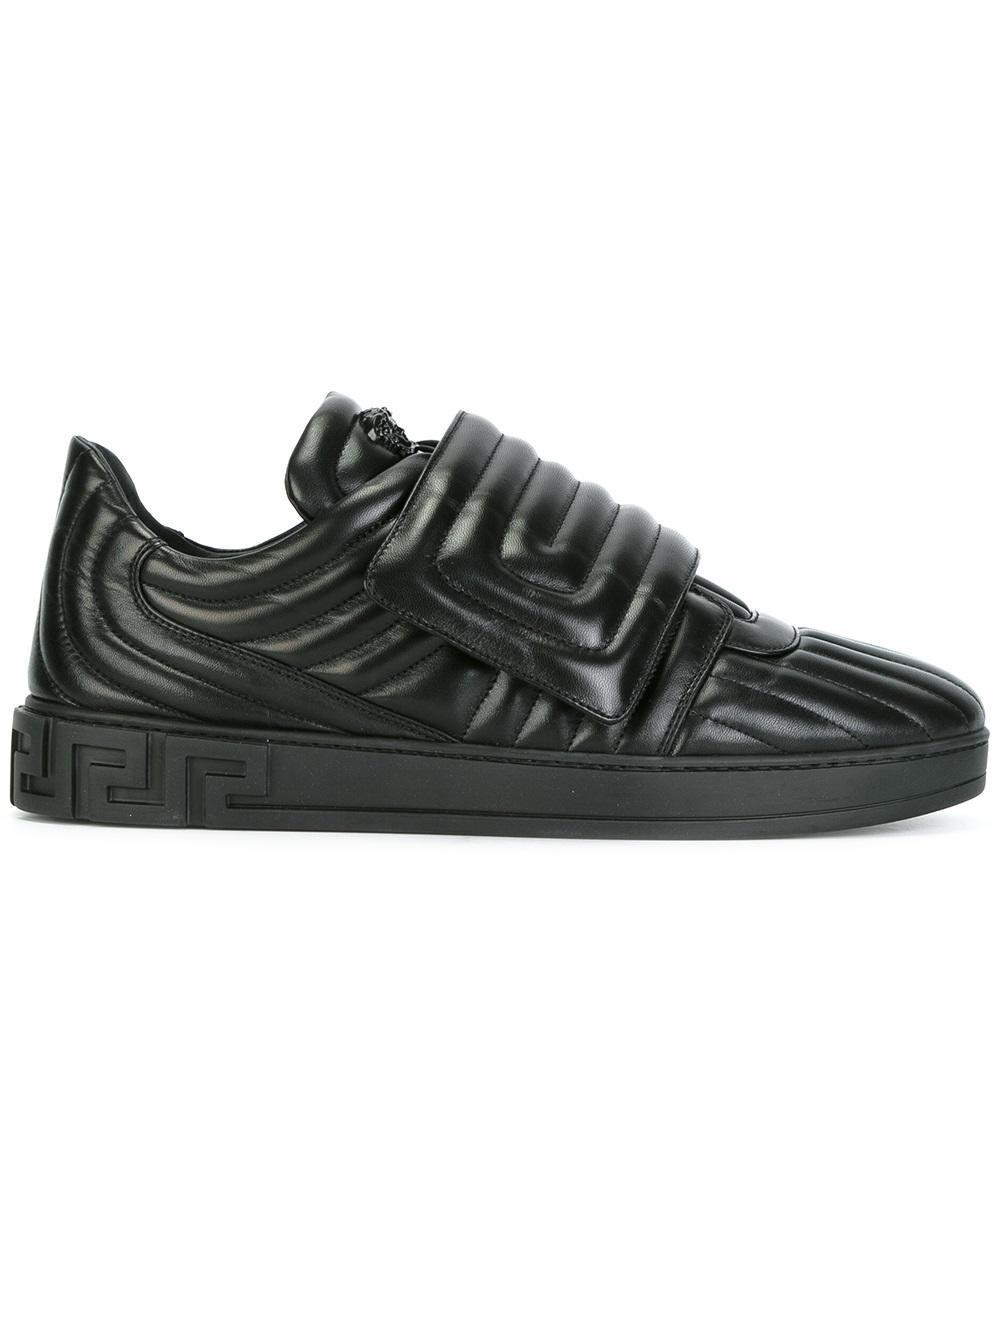 Versace Quilted Greek Key Sneakers in Black for Men | Lyst